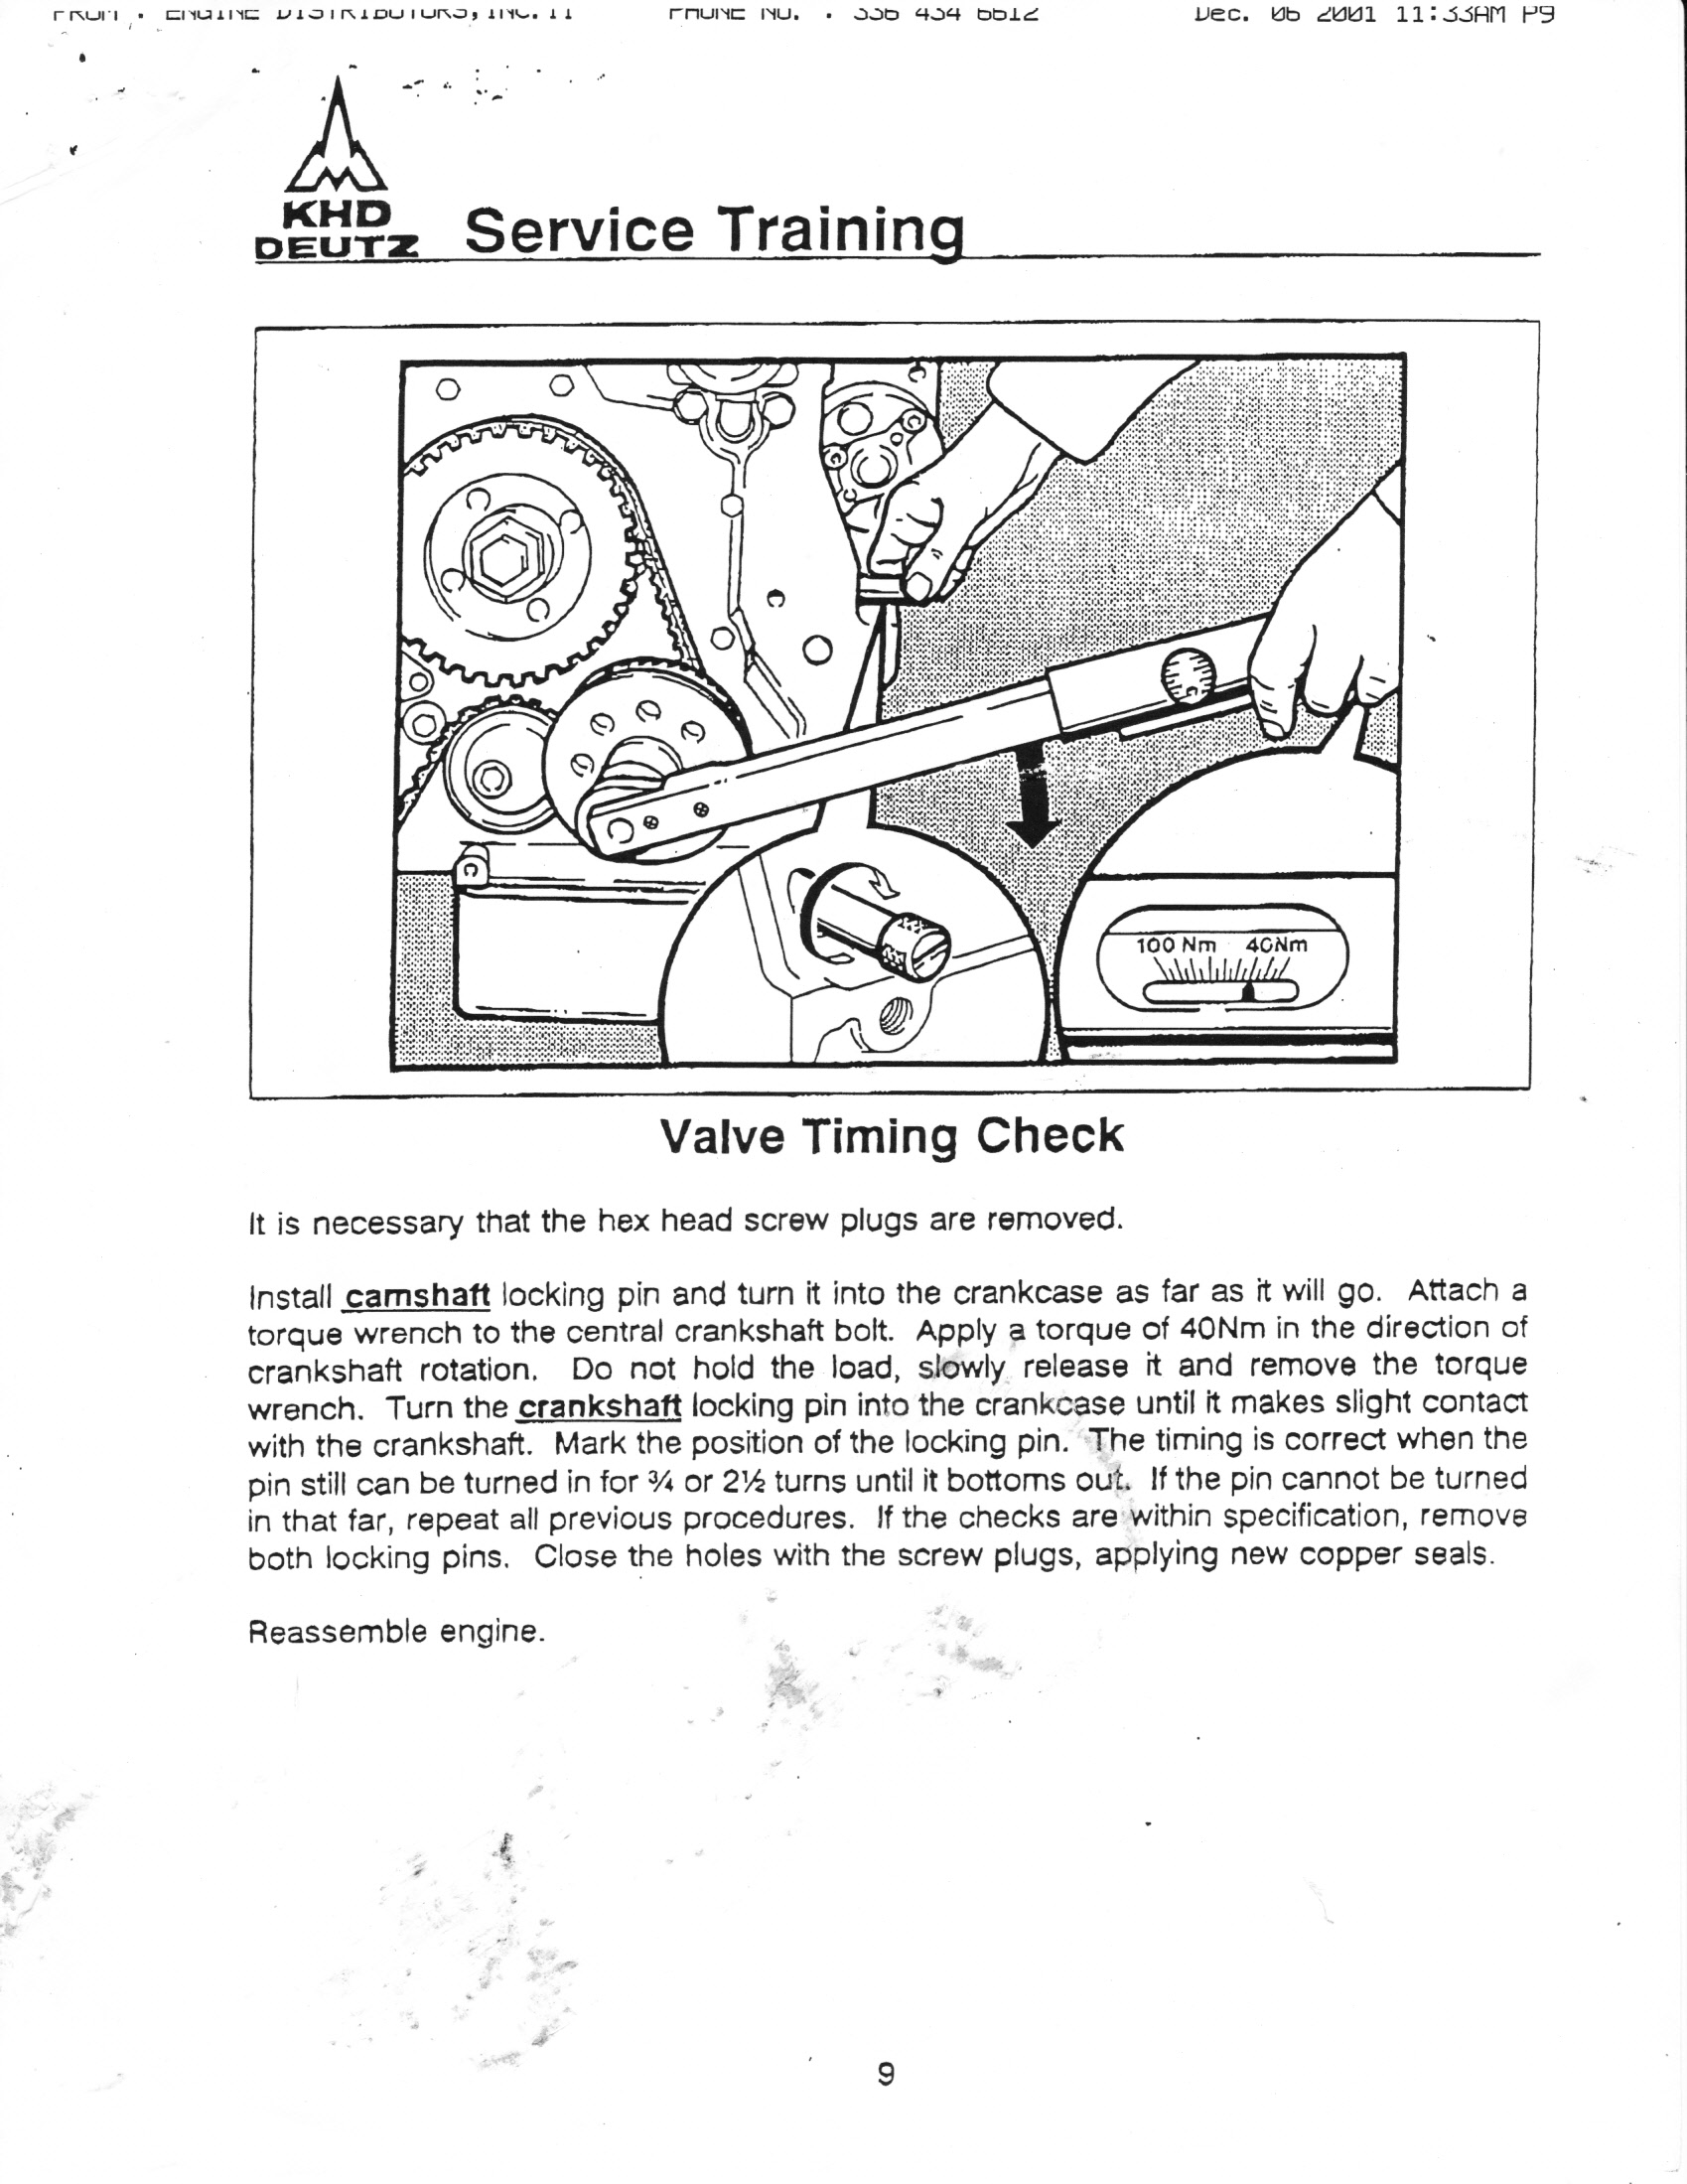 Perfect Deutz Alternator Wiring Diagram Pictures - Electrical and ...